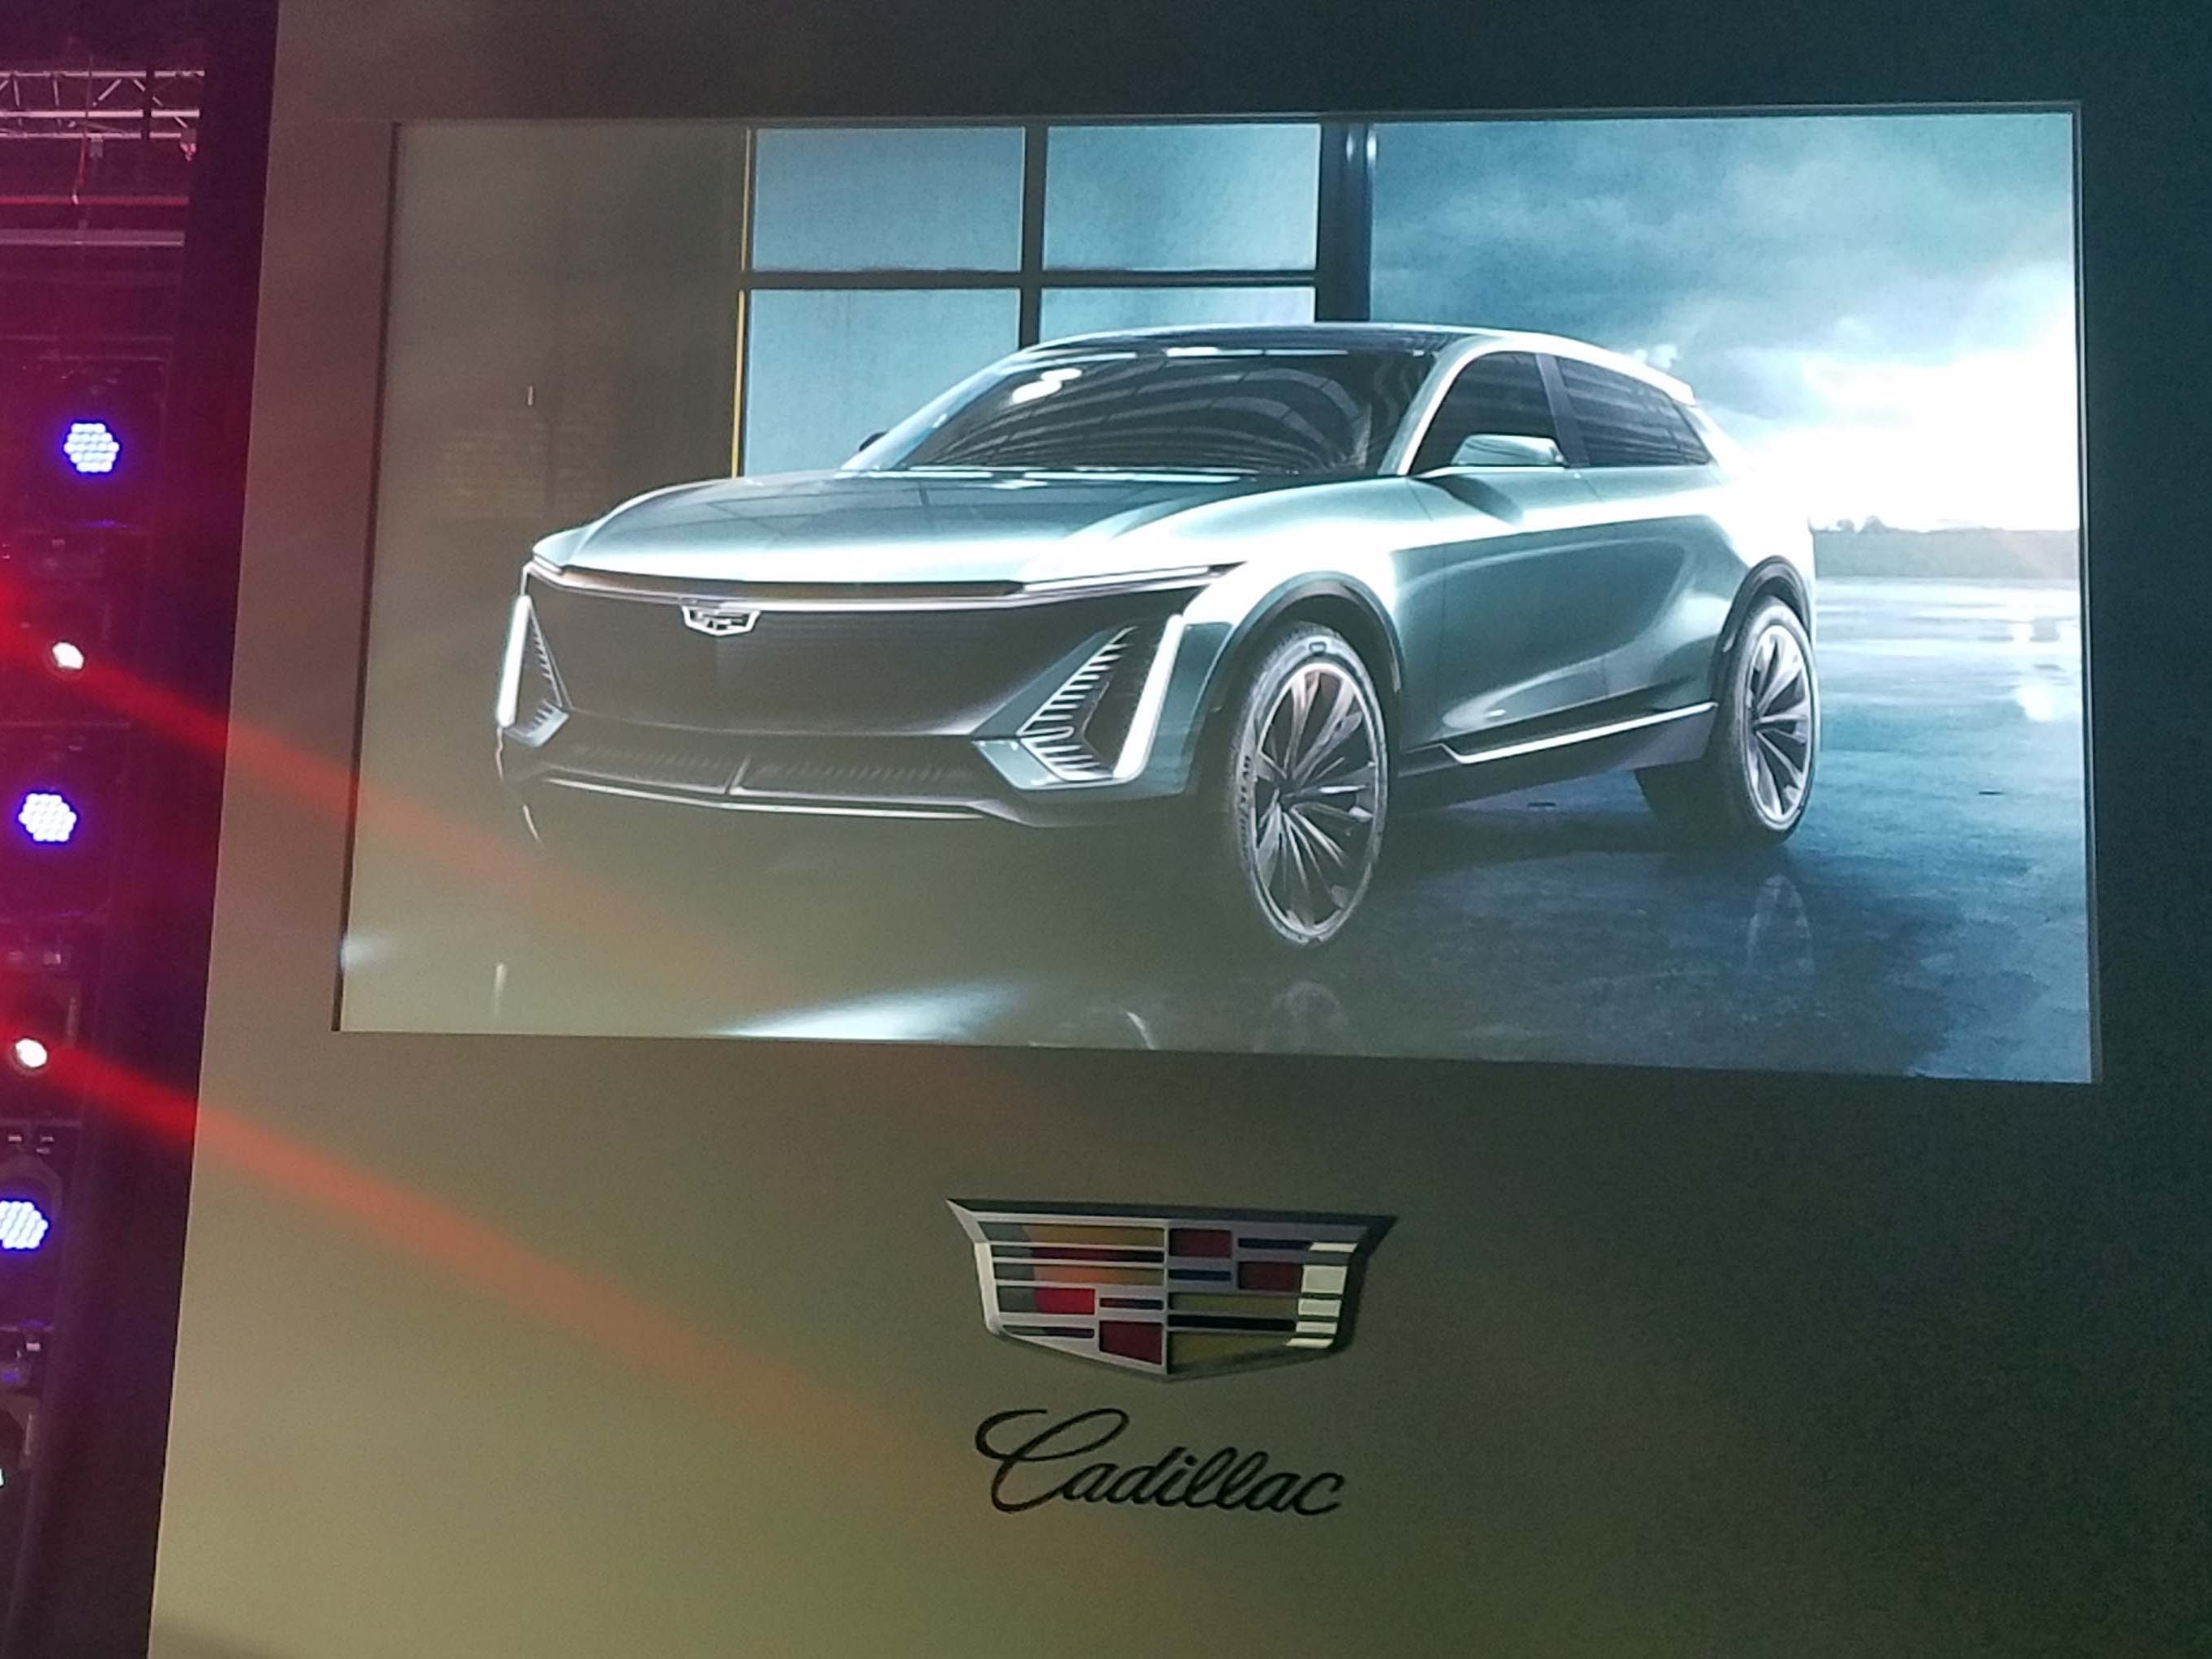 Cadillac showcased a new BEV-3 electric architecture at the Detroit Auto Show that will unerpin a new genration of Caddy EVs. Caddy follows Tesla, BMW, Volvo, Mercedes, and Jaguar in introducing a a new EV platform.